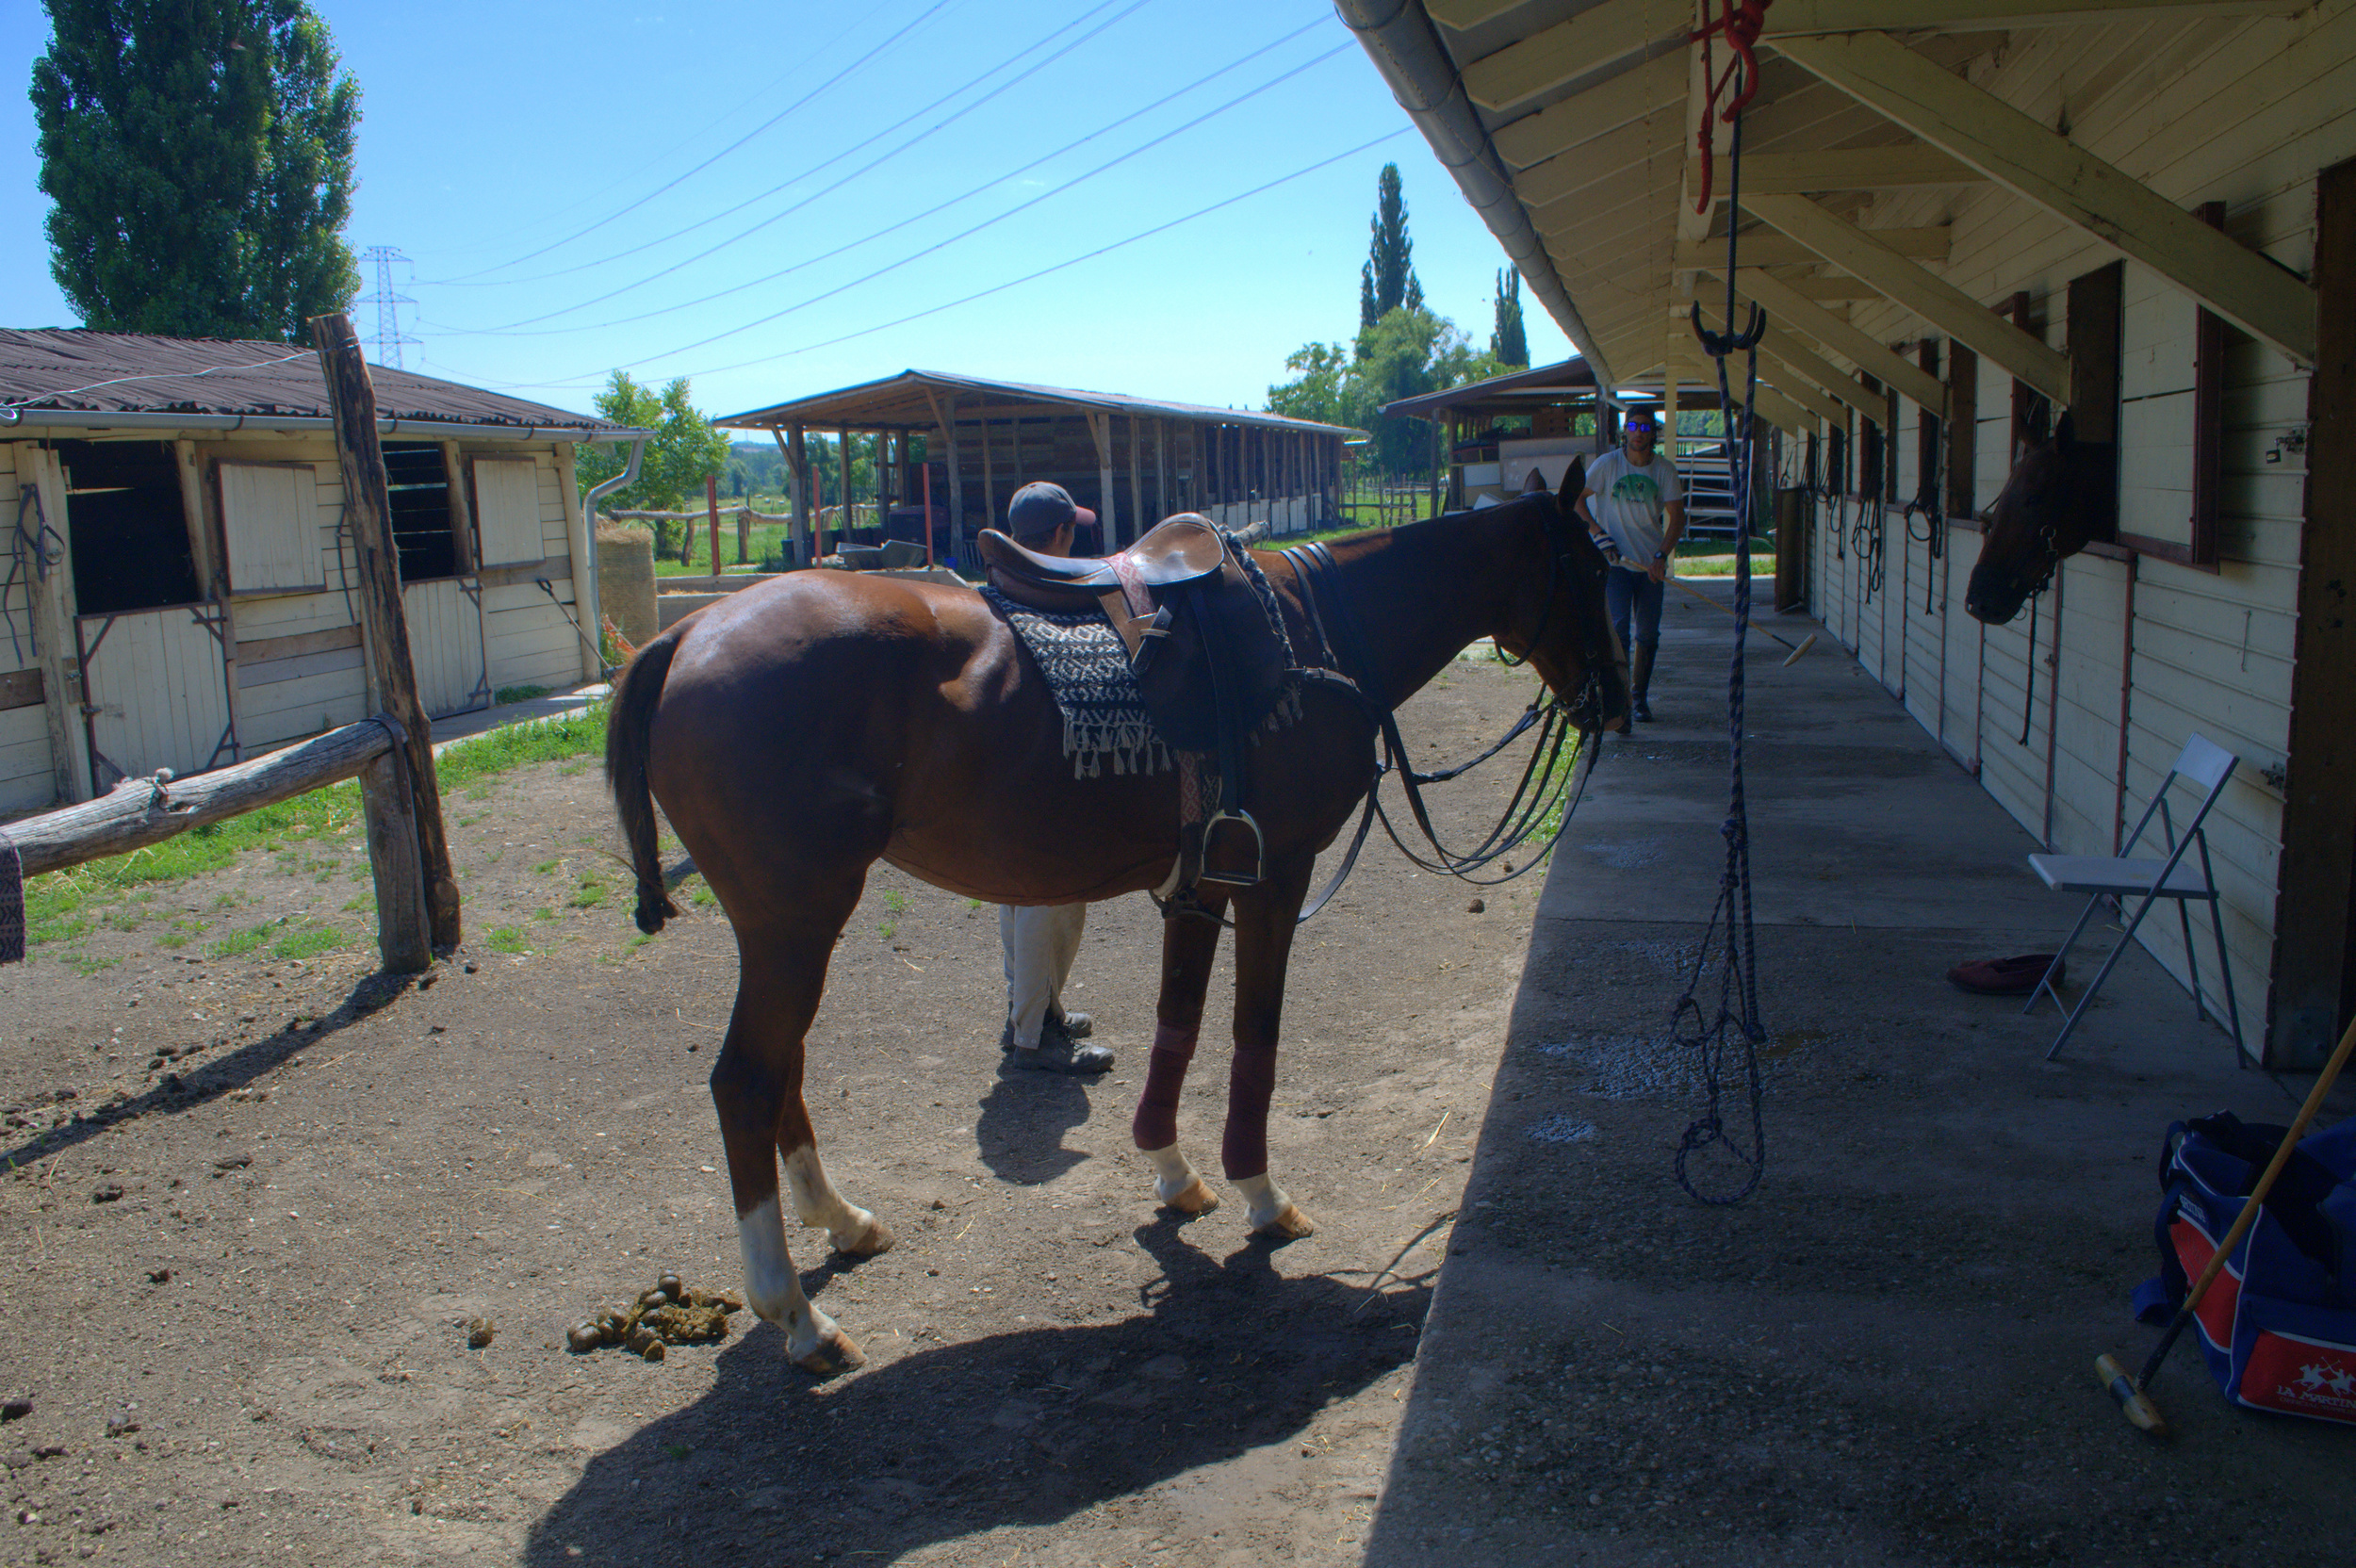 The stables at the Hungarian Polo Club.